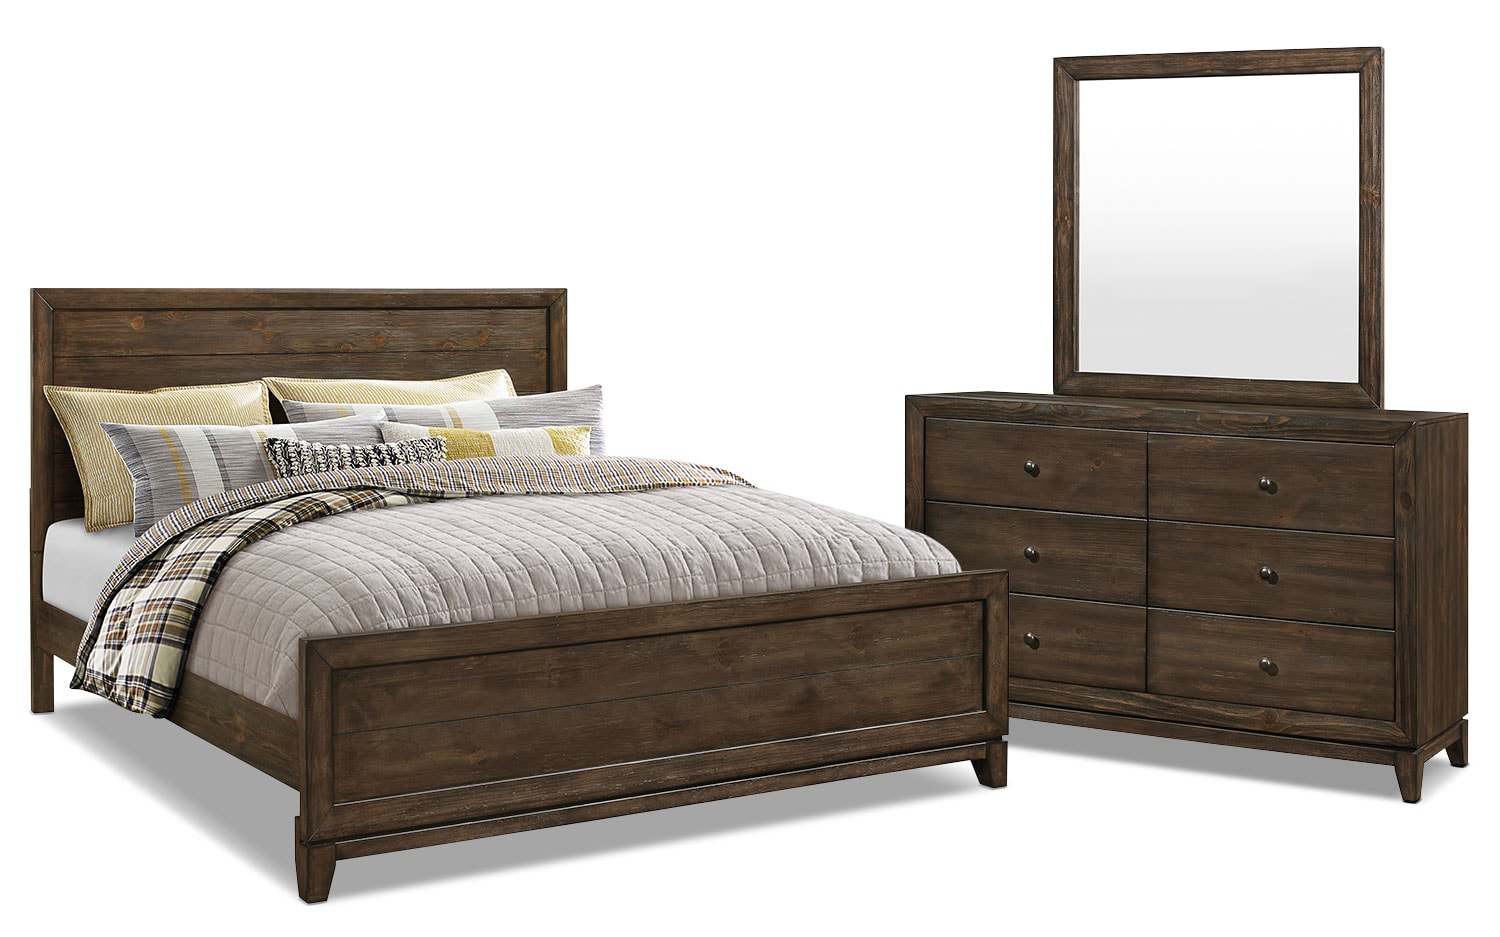 Tacoma 5 piece king bedroom package the brick for Bedroom furniture packages